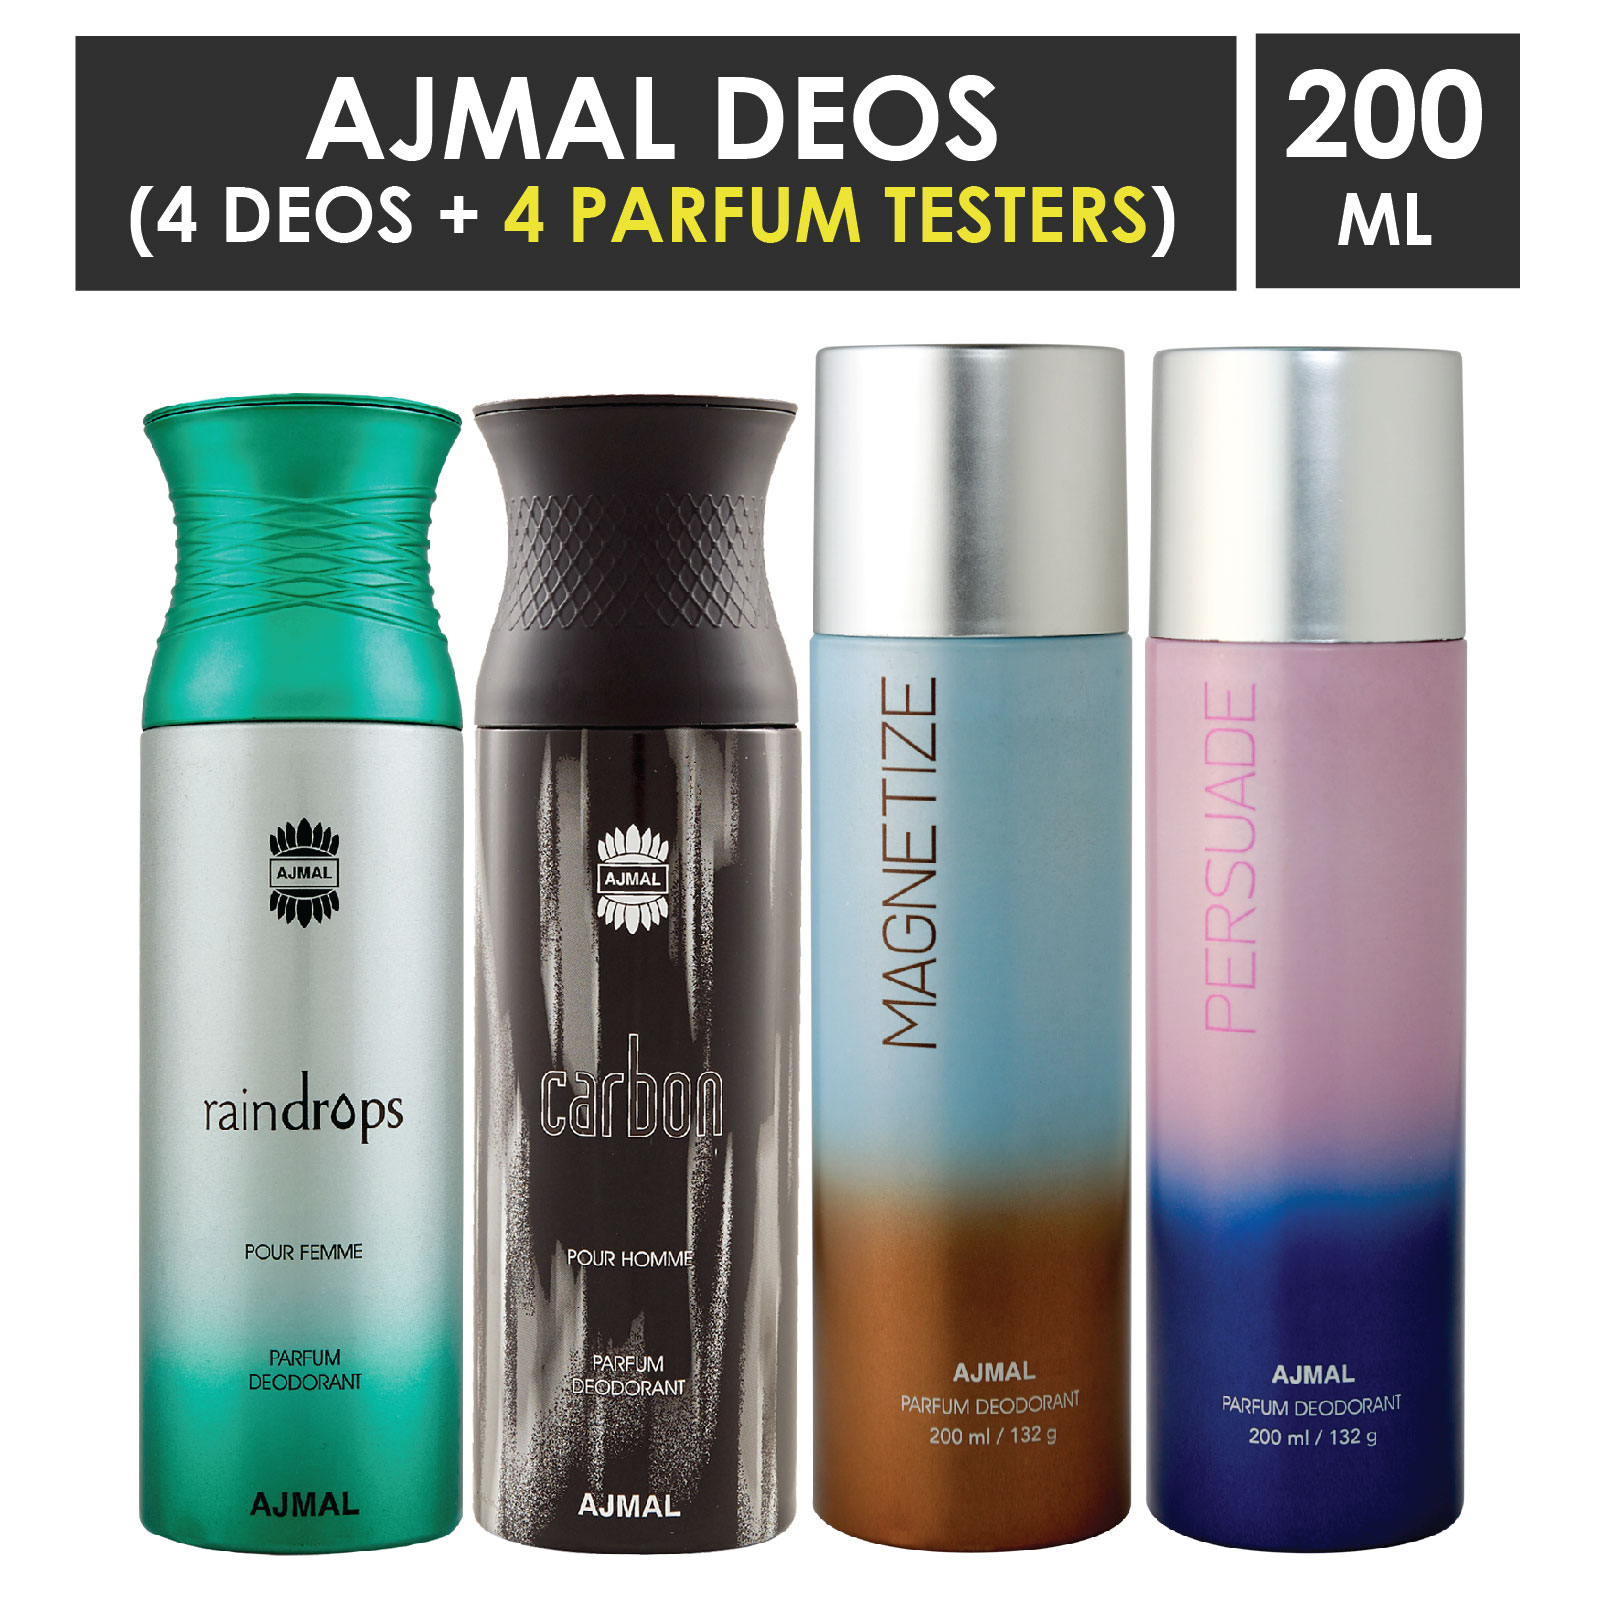 Ajmal | Ajmal 1 Raindrops Femme for Women, 1 Carbon Homme for Men, 1 Magnetize and 1 Persuade for Men & Women High Quality Deodorants each 200ML Combo pack of 4 (Total 800ML) + 4 Parfum Testers